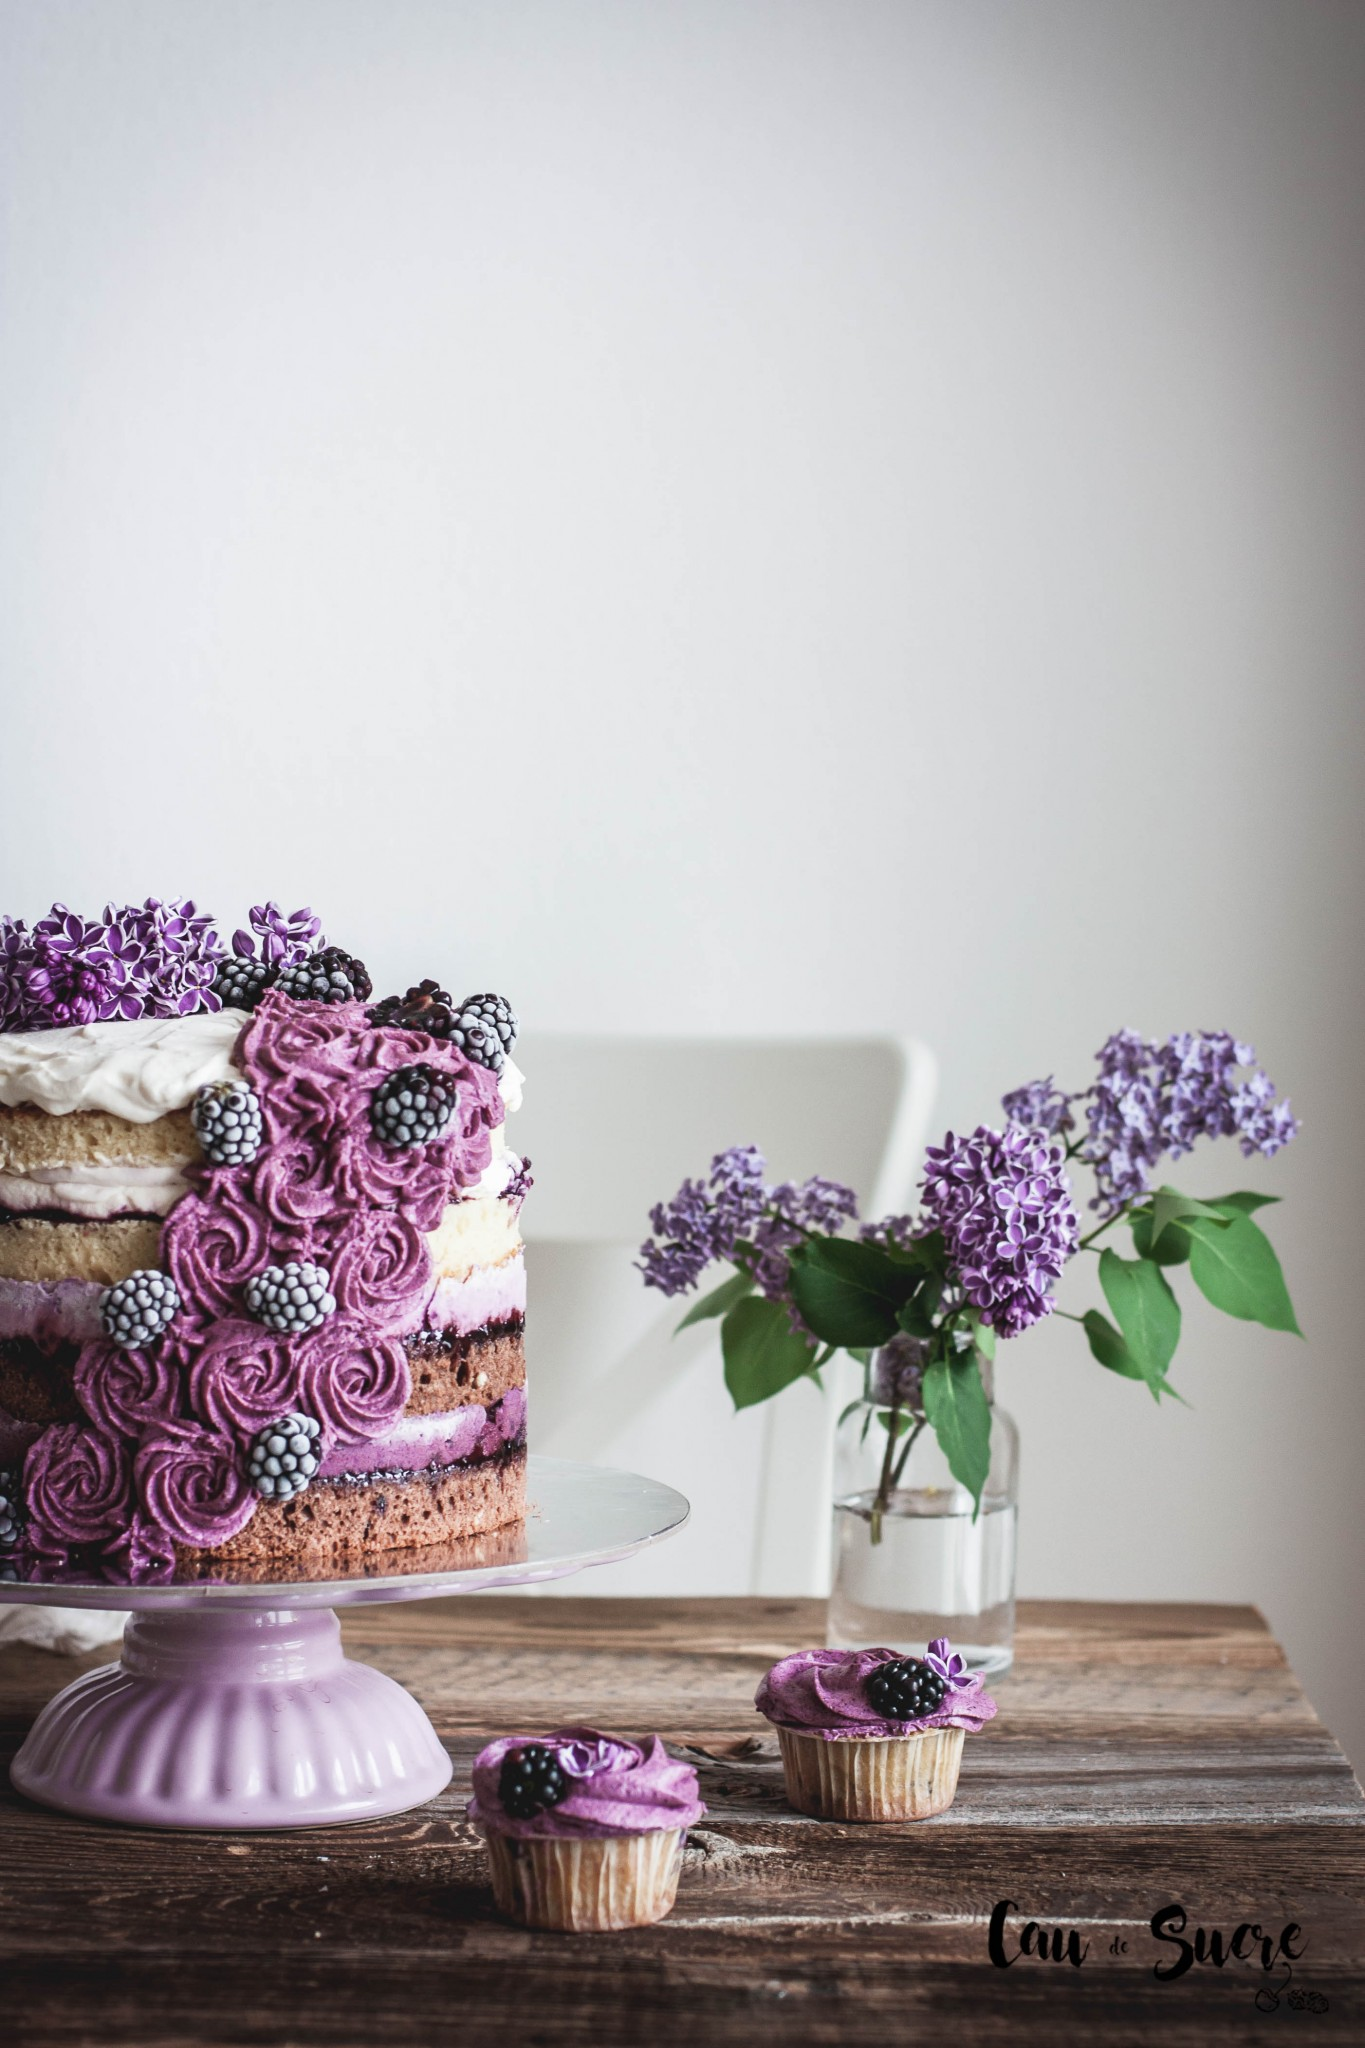 blackberry_ombre_layer_cake